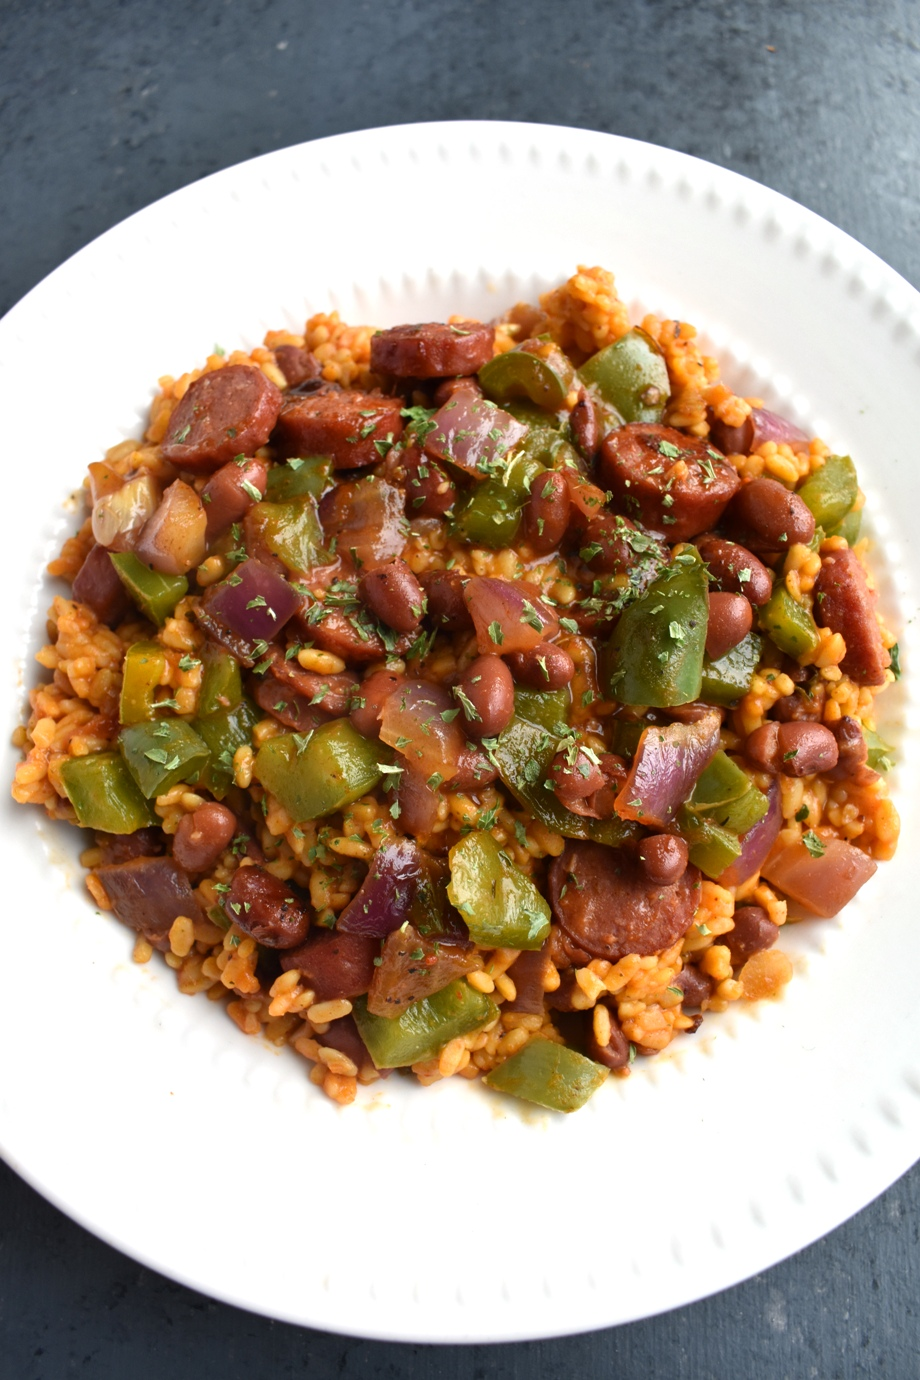 Sausage, Red Beans and Rice is a healthier take on the tradition dish and is loaded with spicy cajun flavor, spicy andouille sausage, sauteed bell peppers, garlic and onions, brown rice and red beans for a healthy and hearty meal!